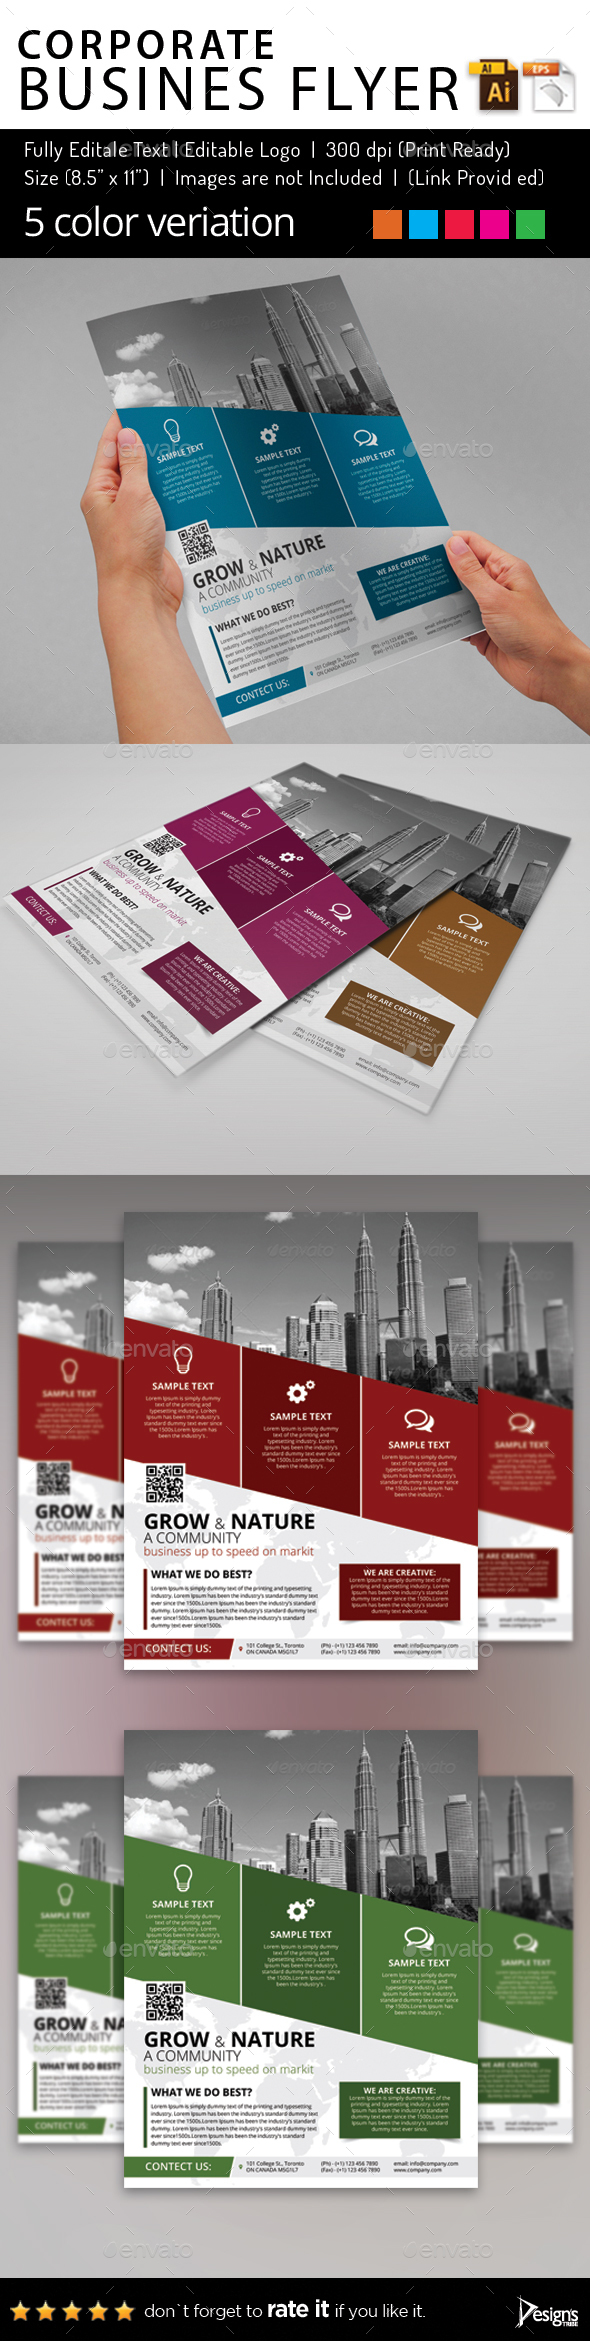 Multipurpose Business Flyer 80 - Flyers Print Templates